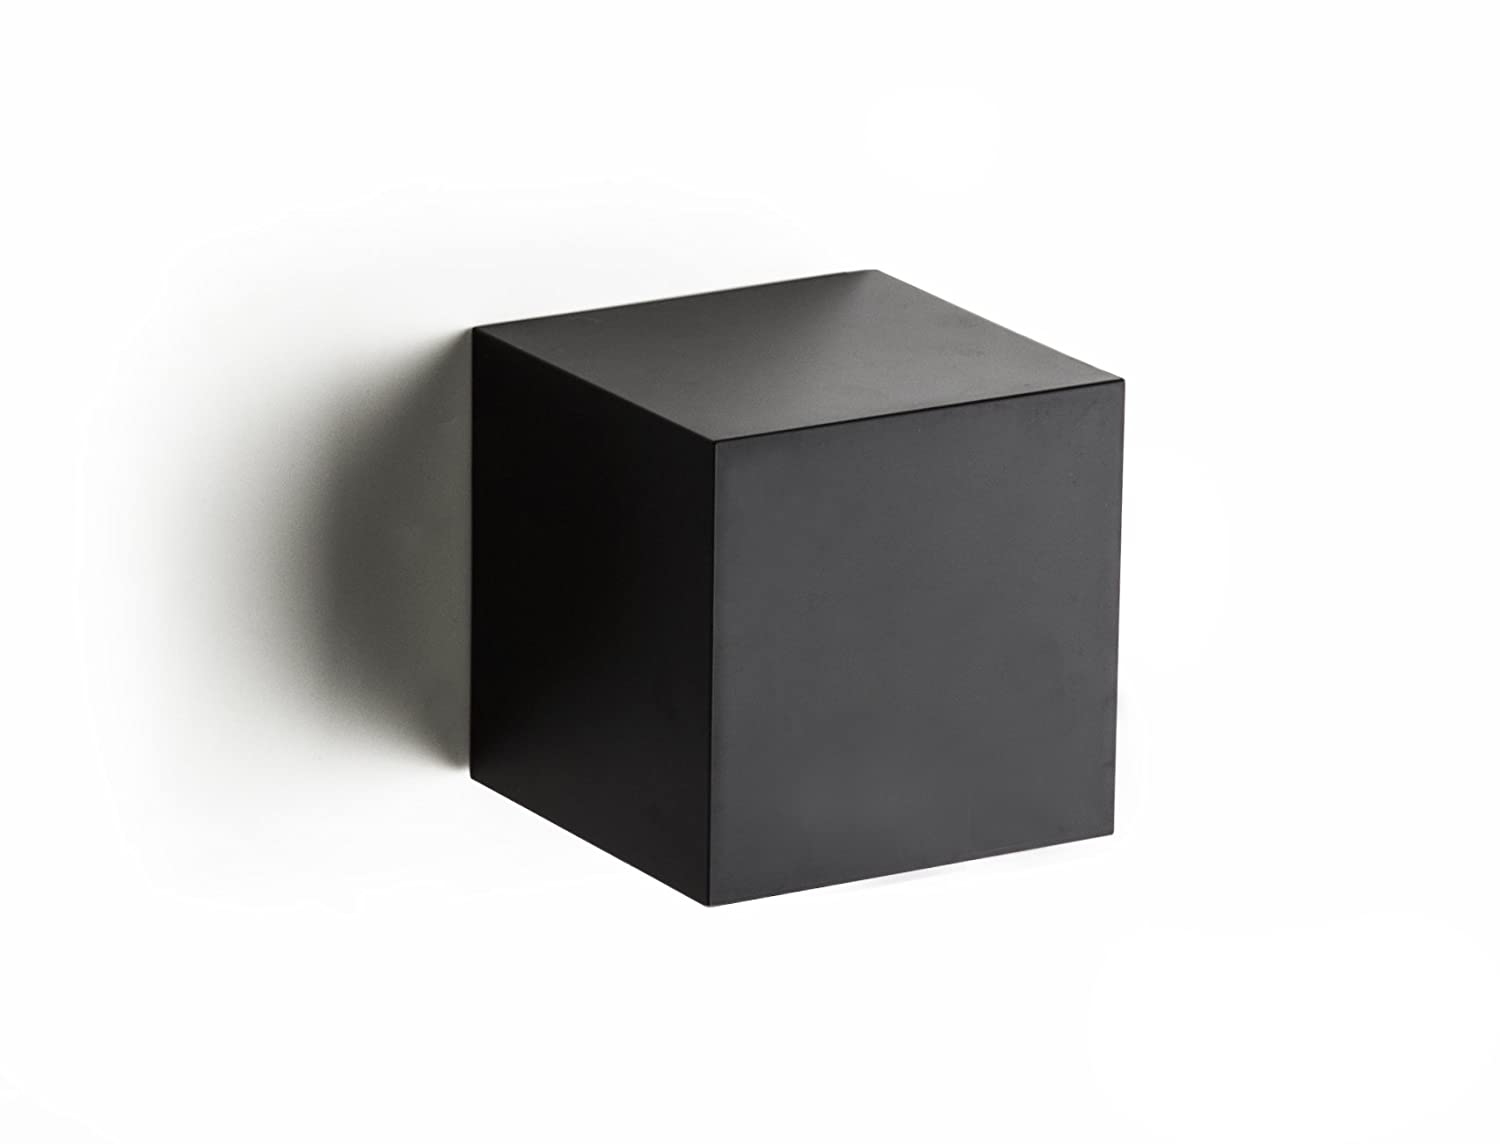 Pixel Cube Floating Wall Display Shelves (black): Home